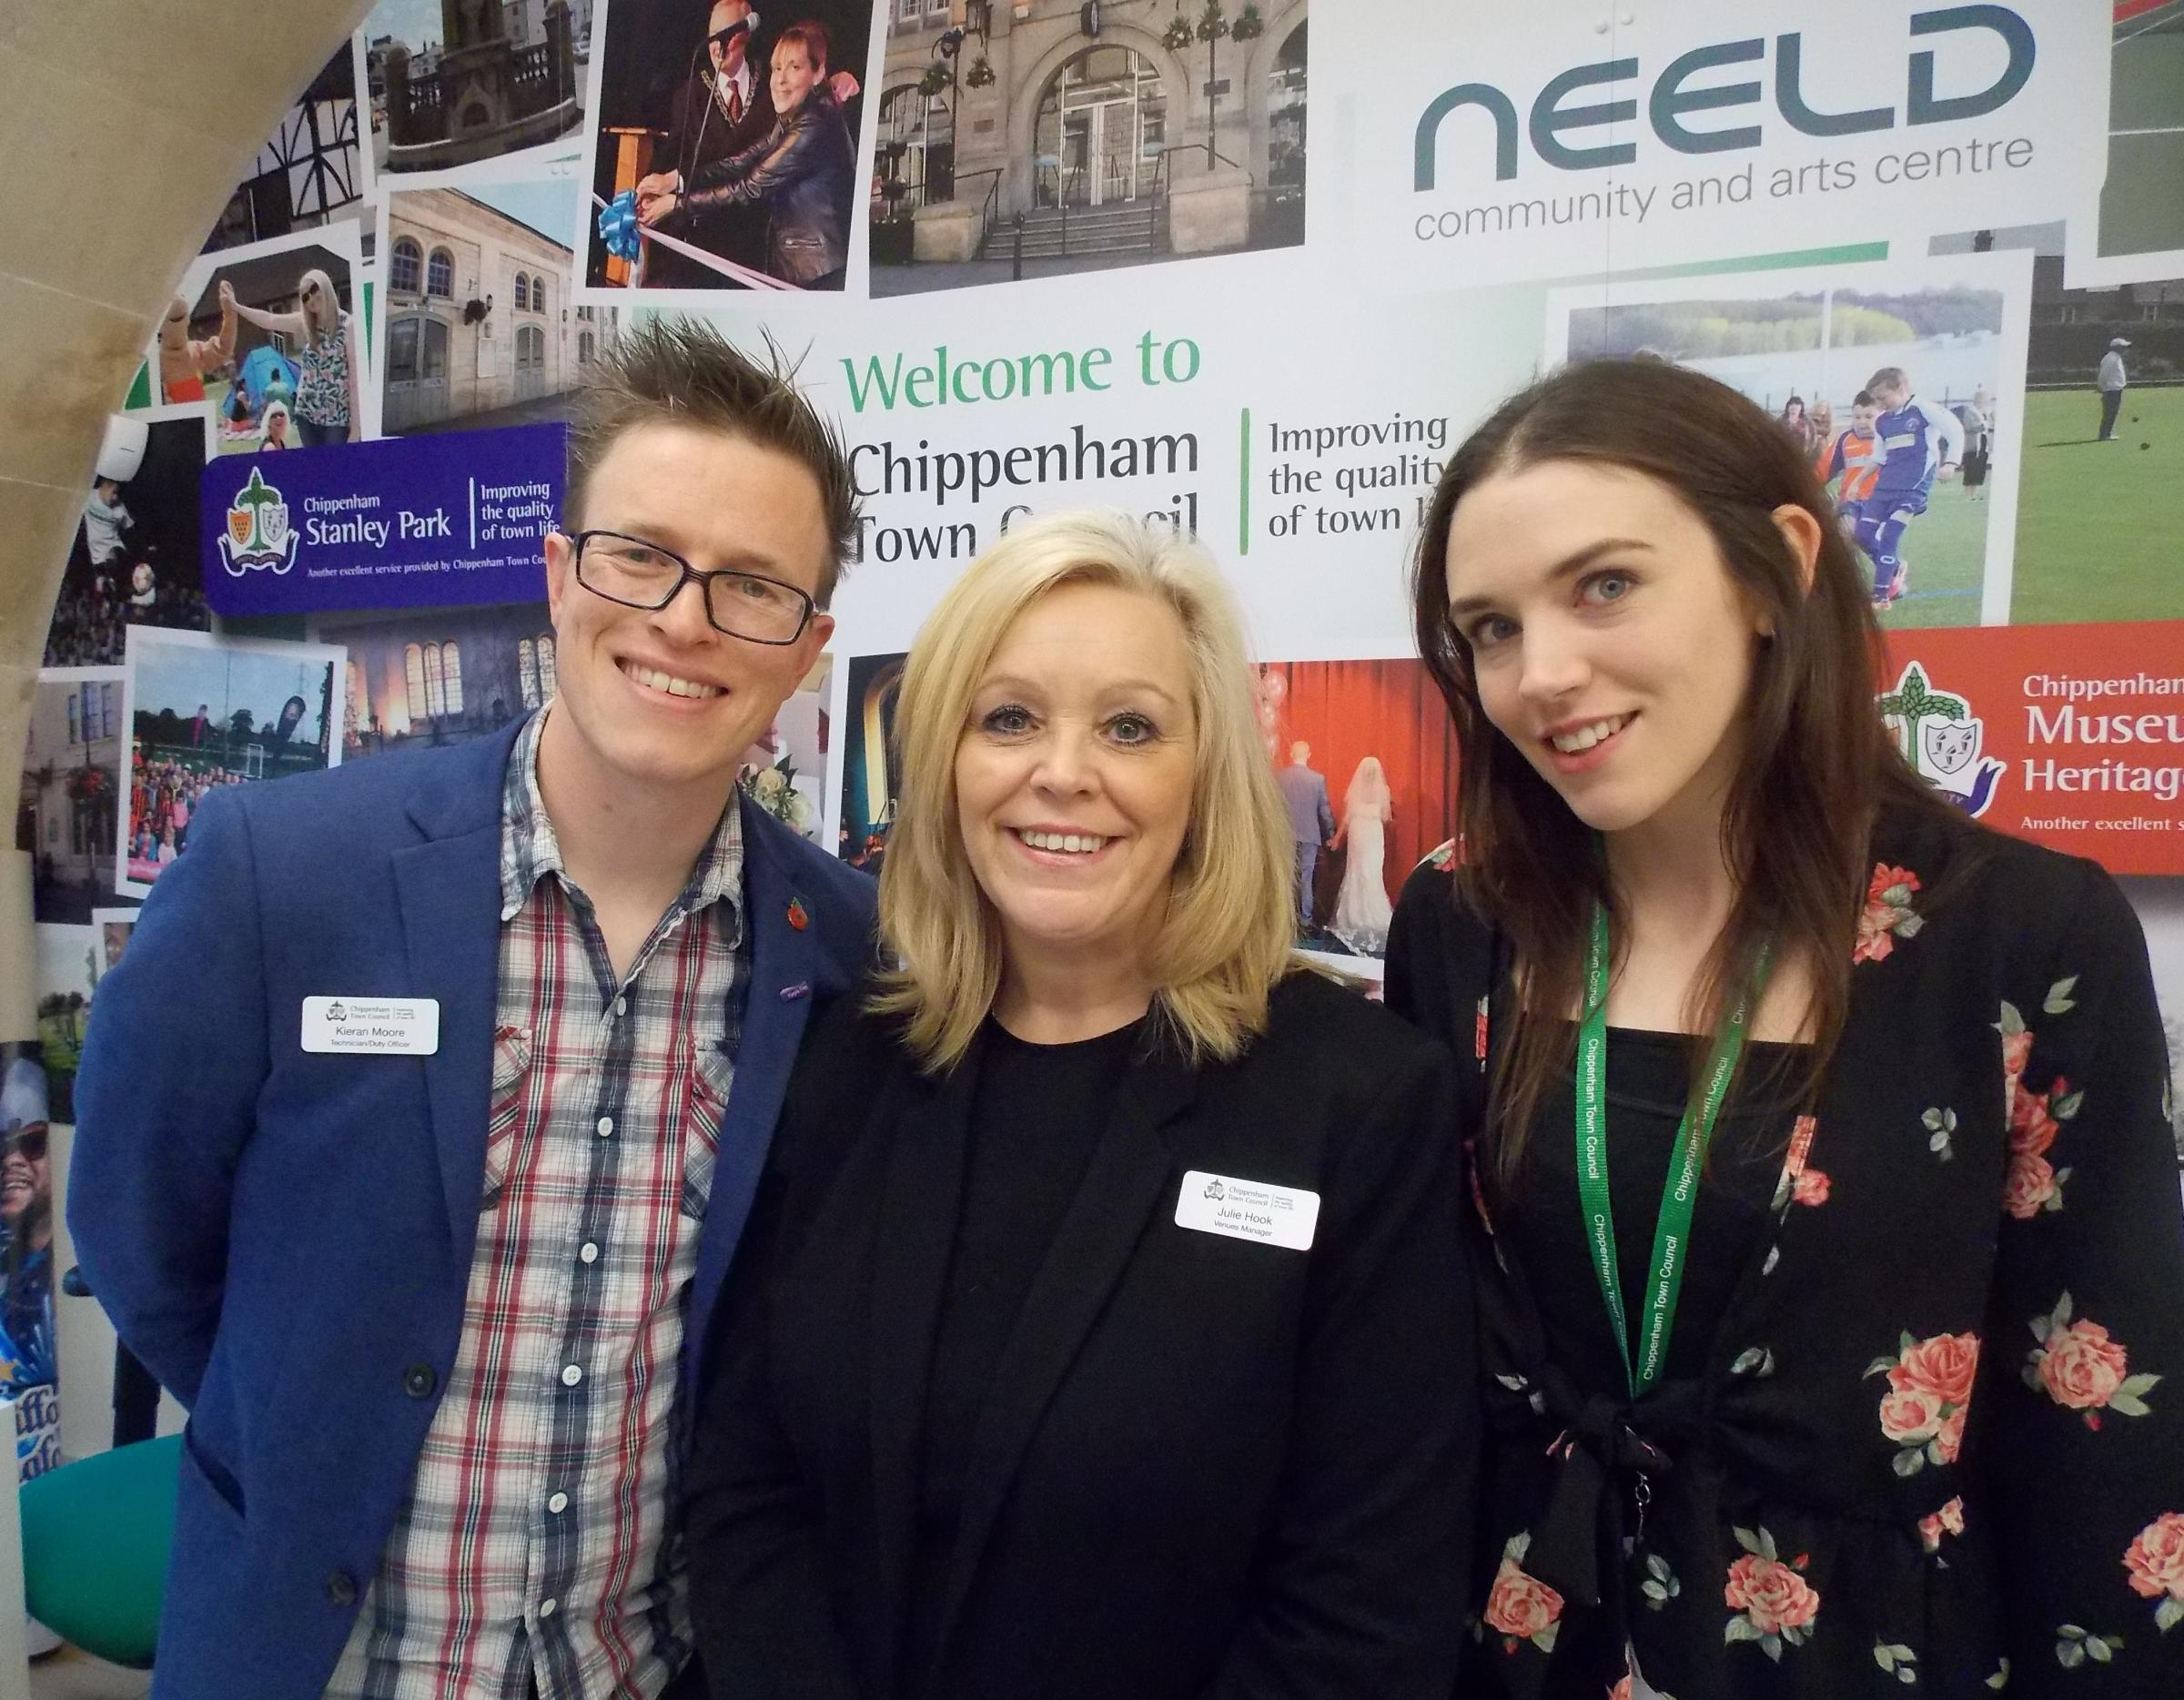 Venues bookings co-ordinator Helen Bywater, venues manager Julie Hook and technician Kieran Moore